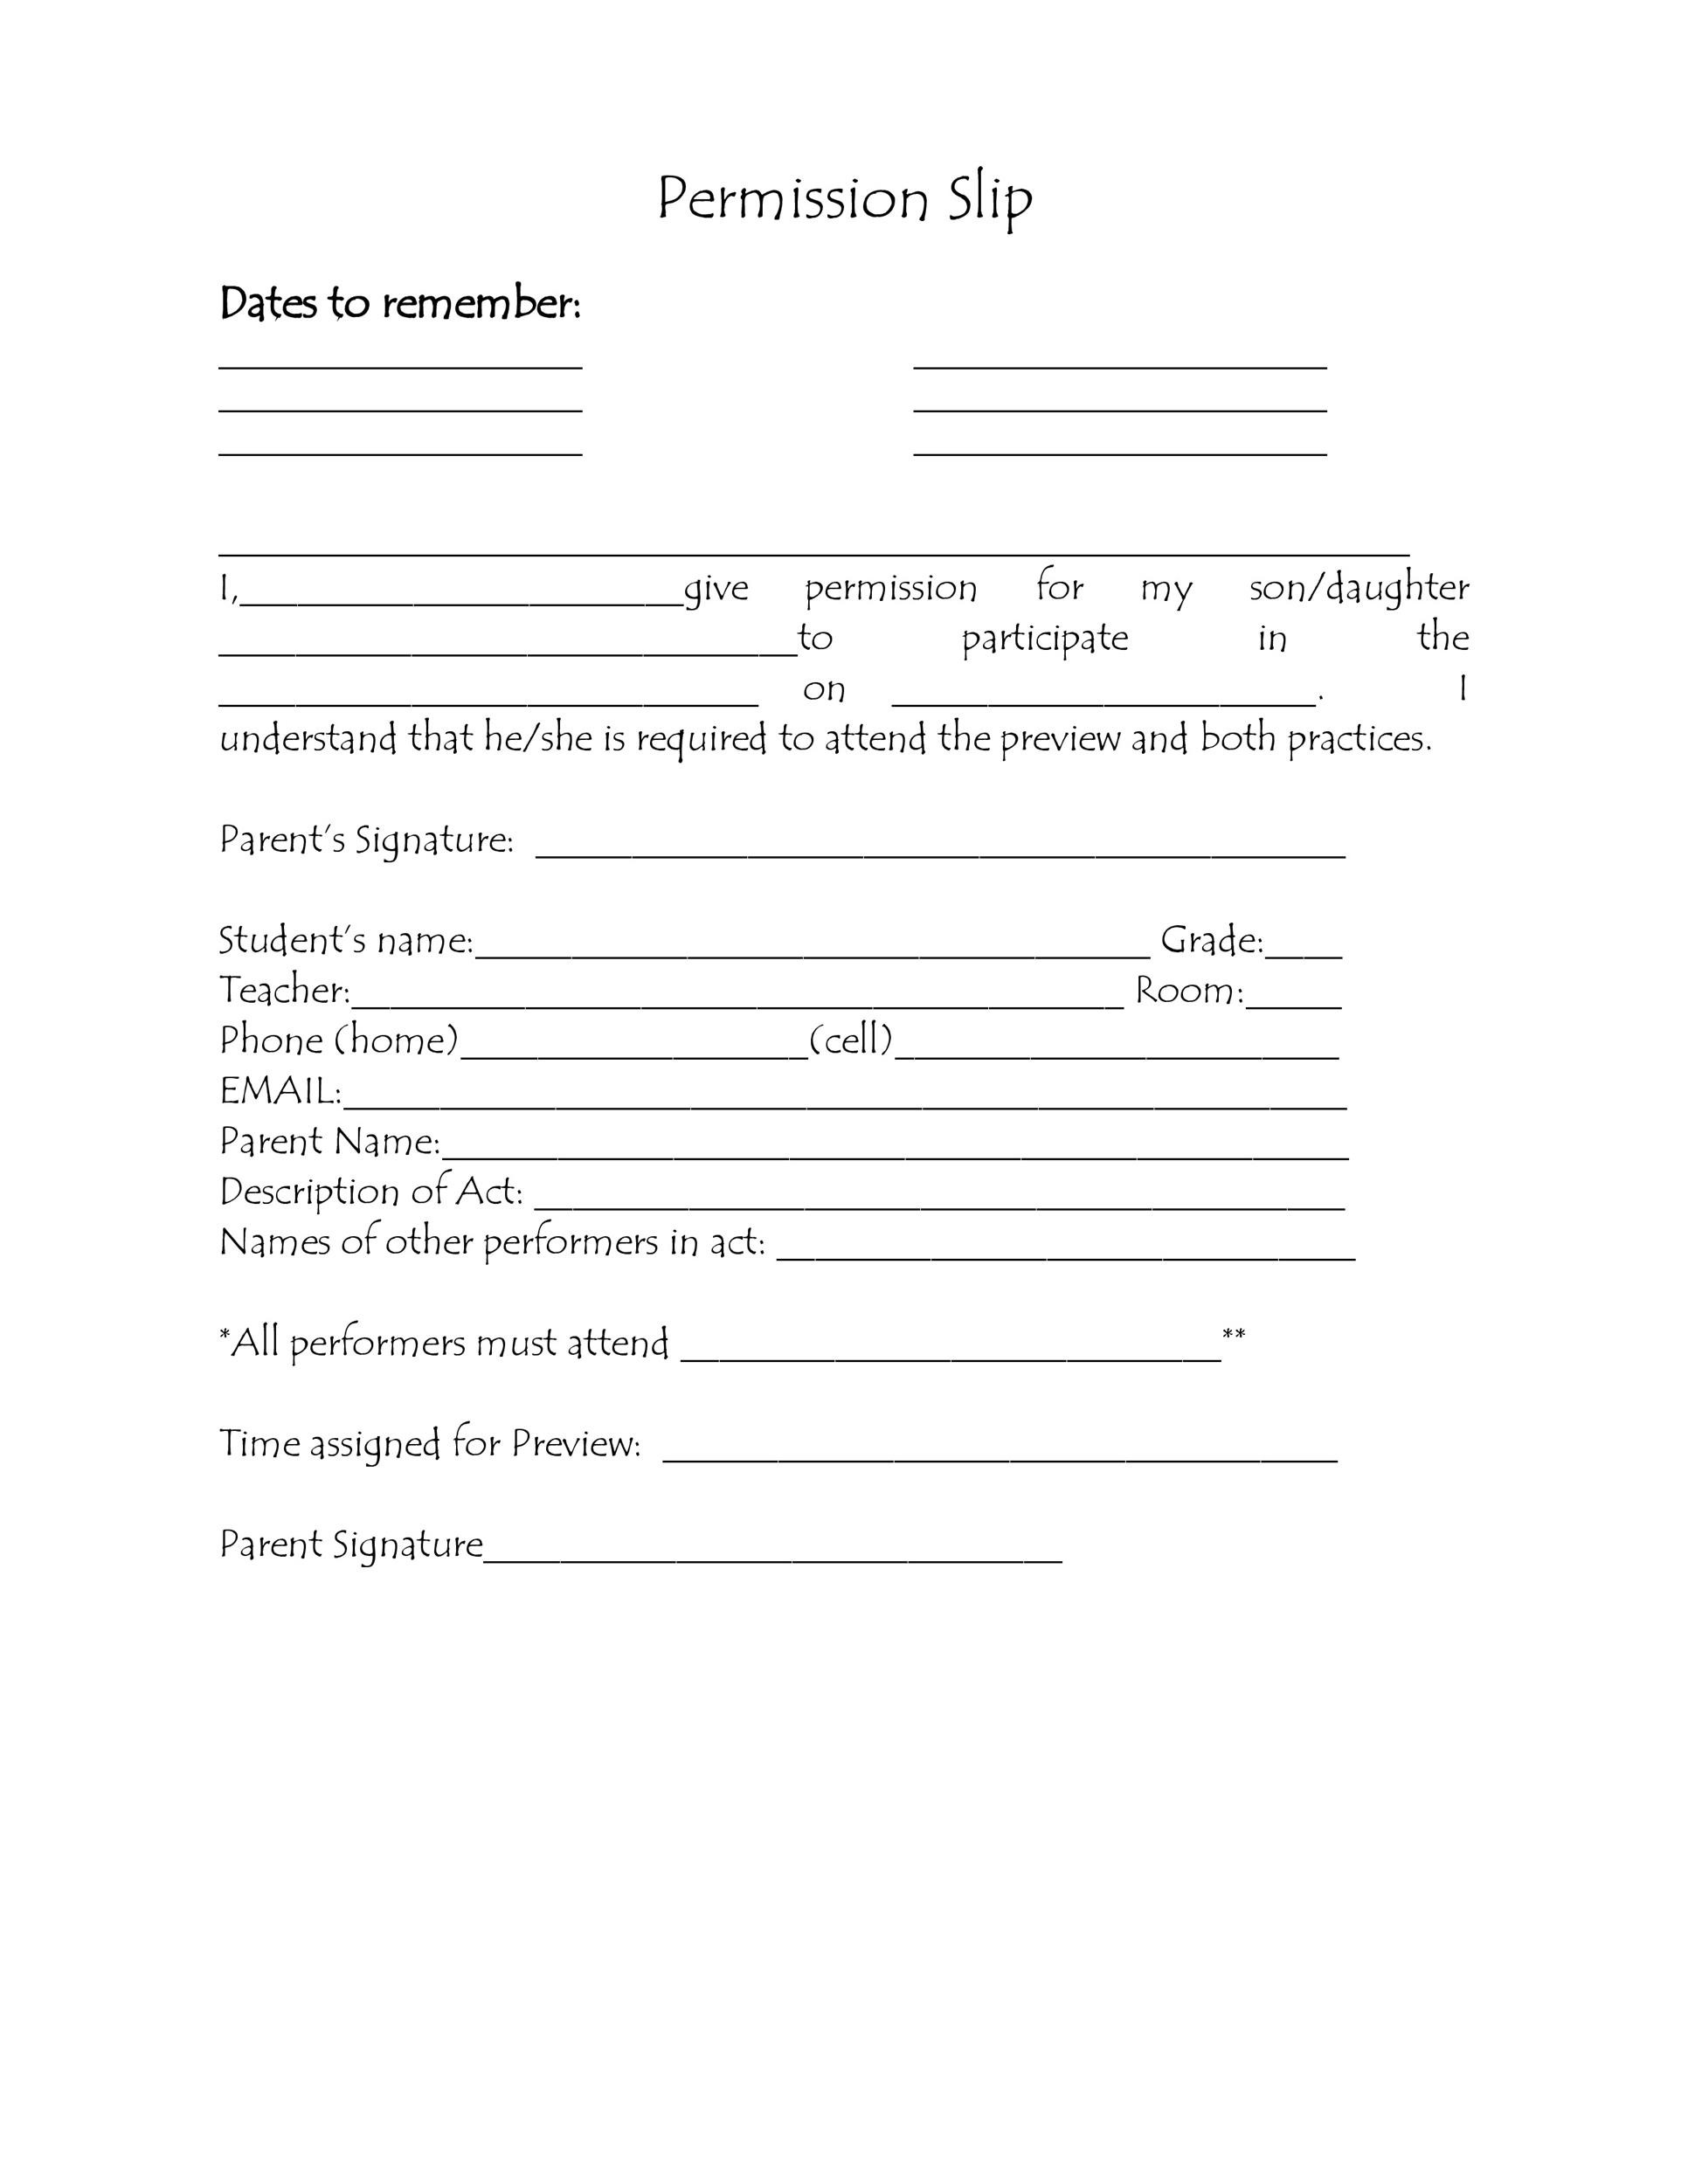 Printable Permission Slip 27  Permission Slip Template Word